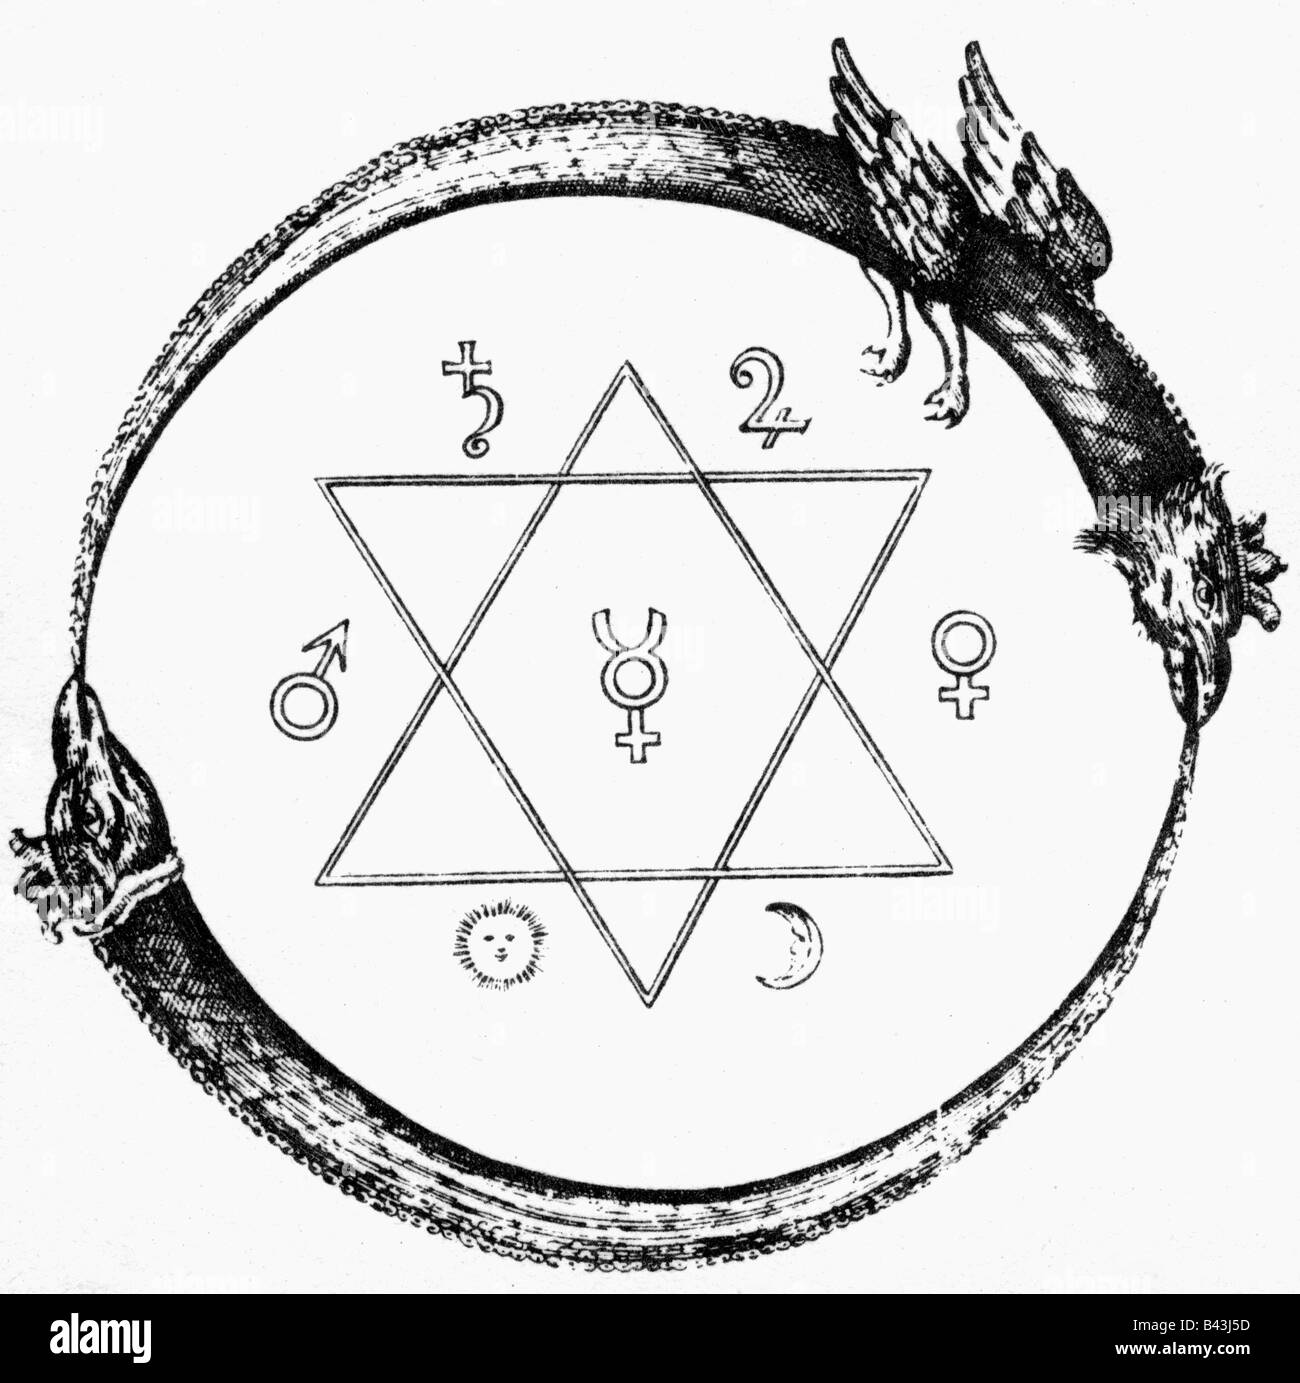 Alchemy symbols stock photos alchemy symbols stock images alamy alchemy symbols annulus platonis seal of solomon copper engraving 1723 biocorpaavc Image collections